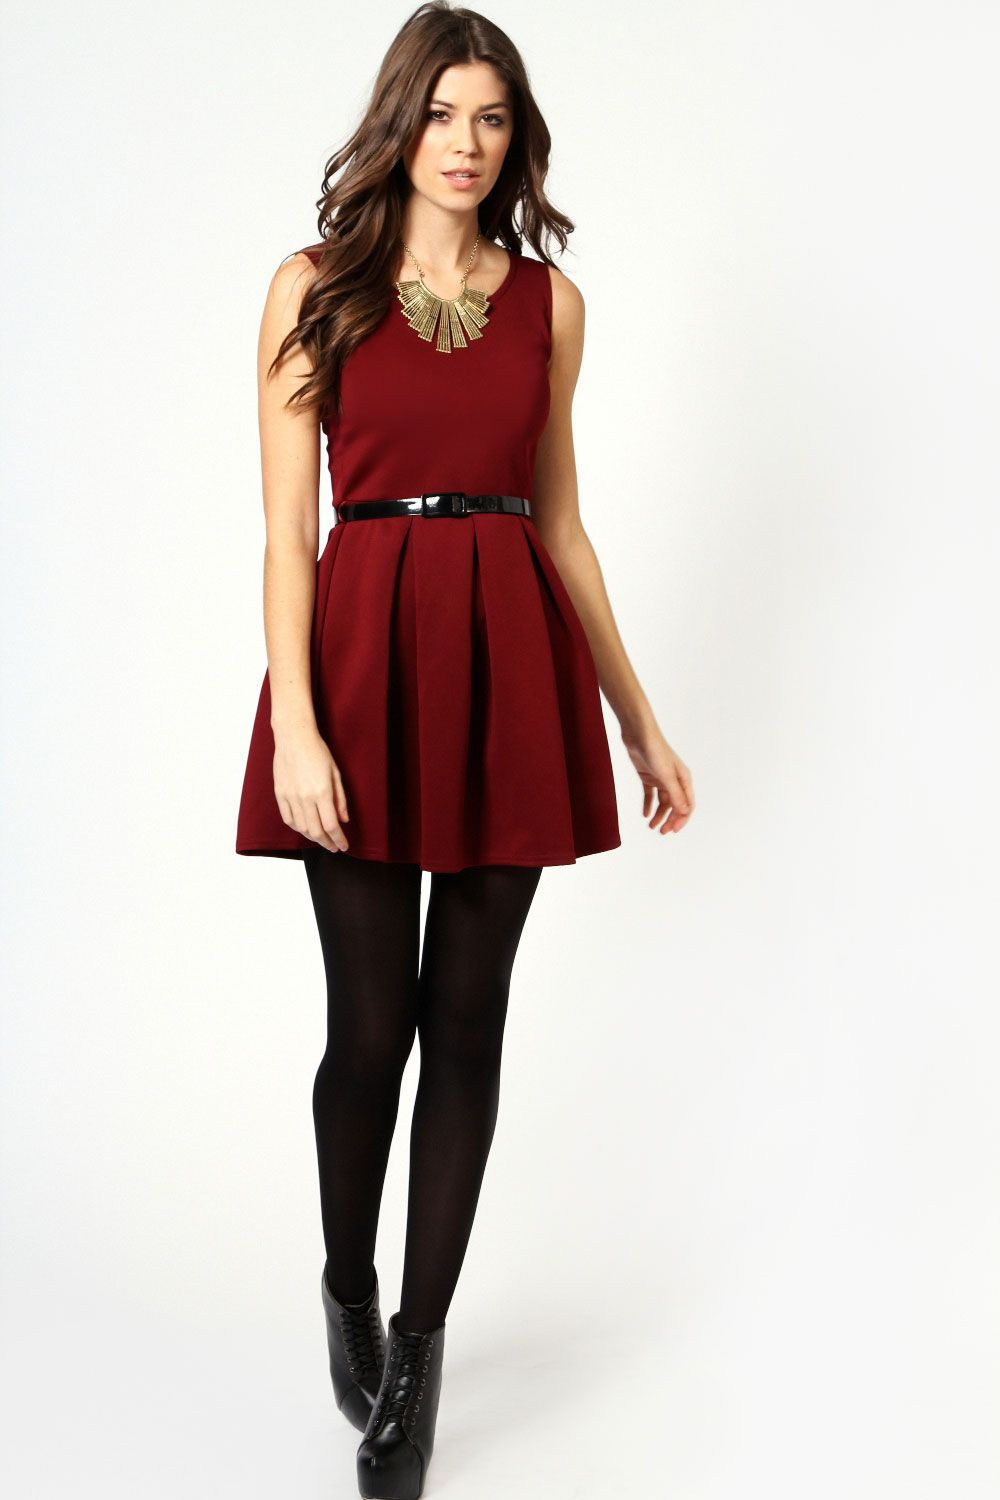 Can you wear red dress with black tights